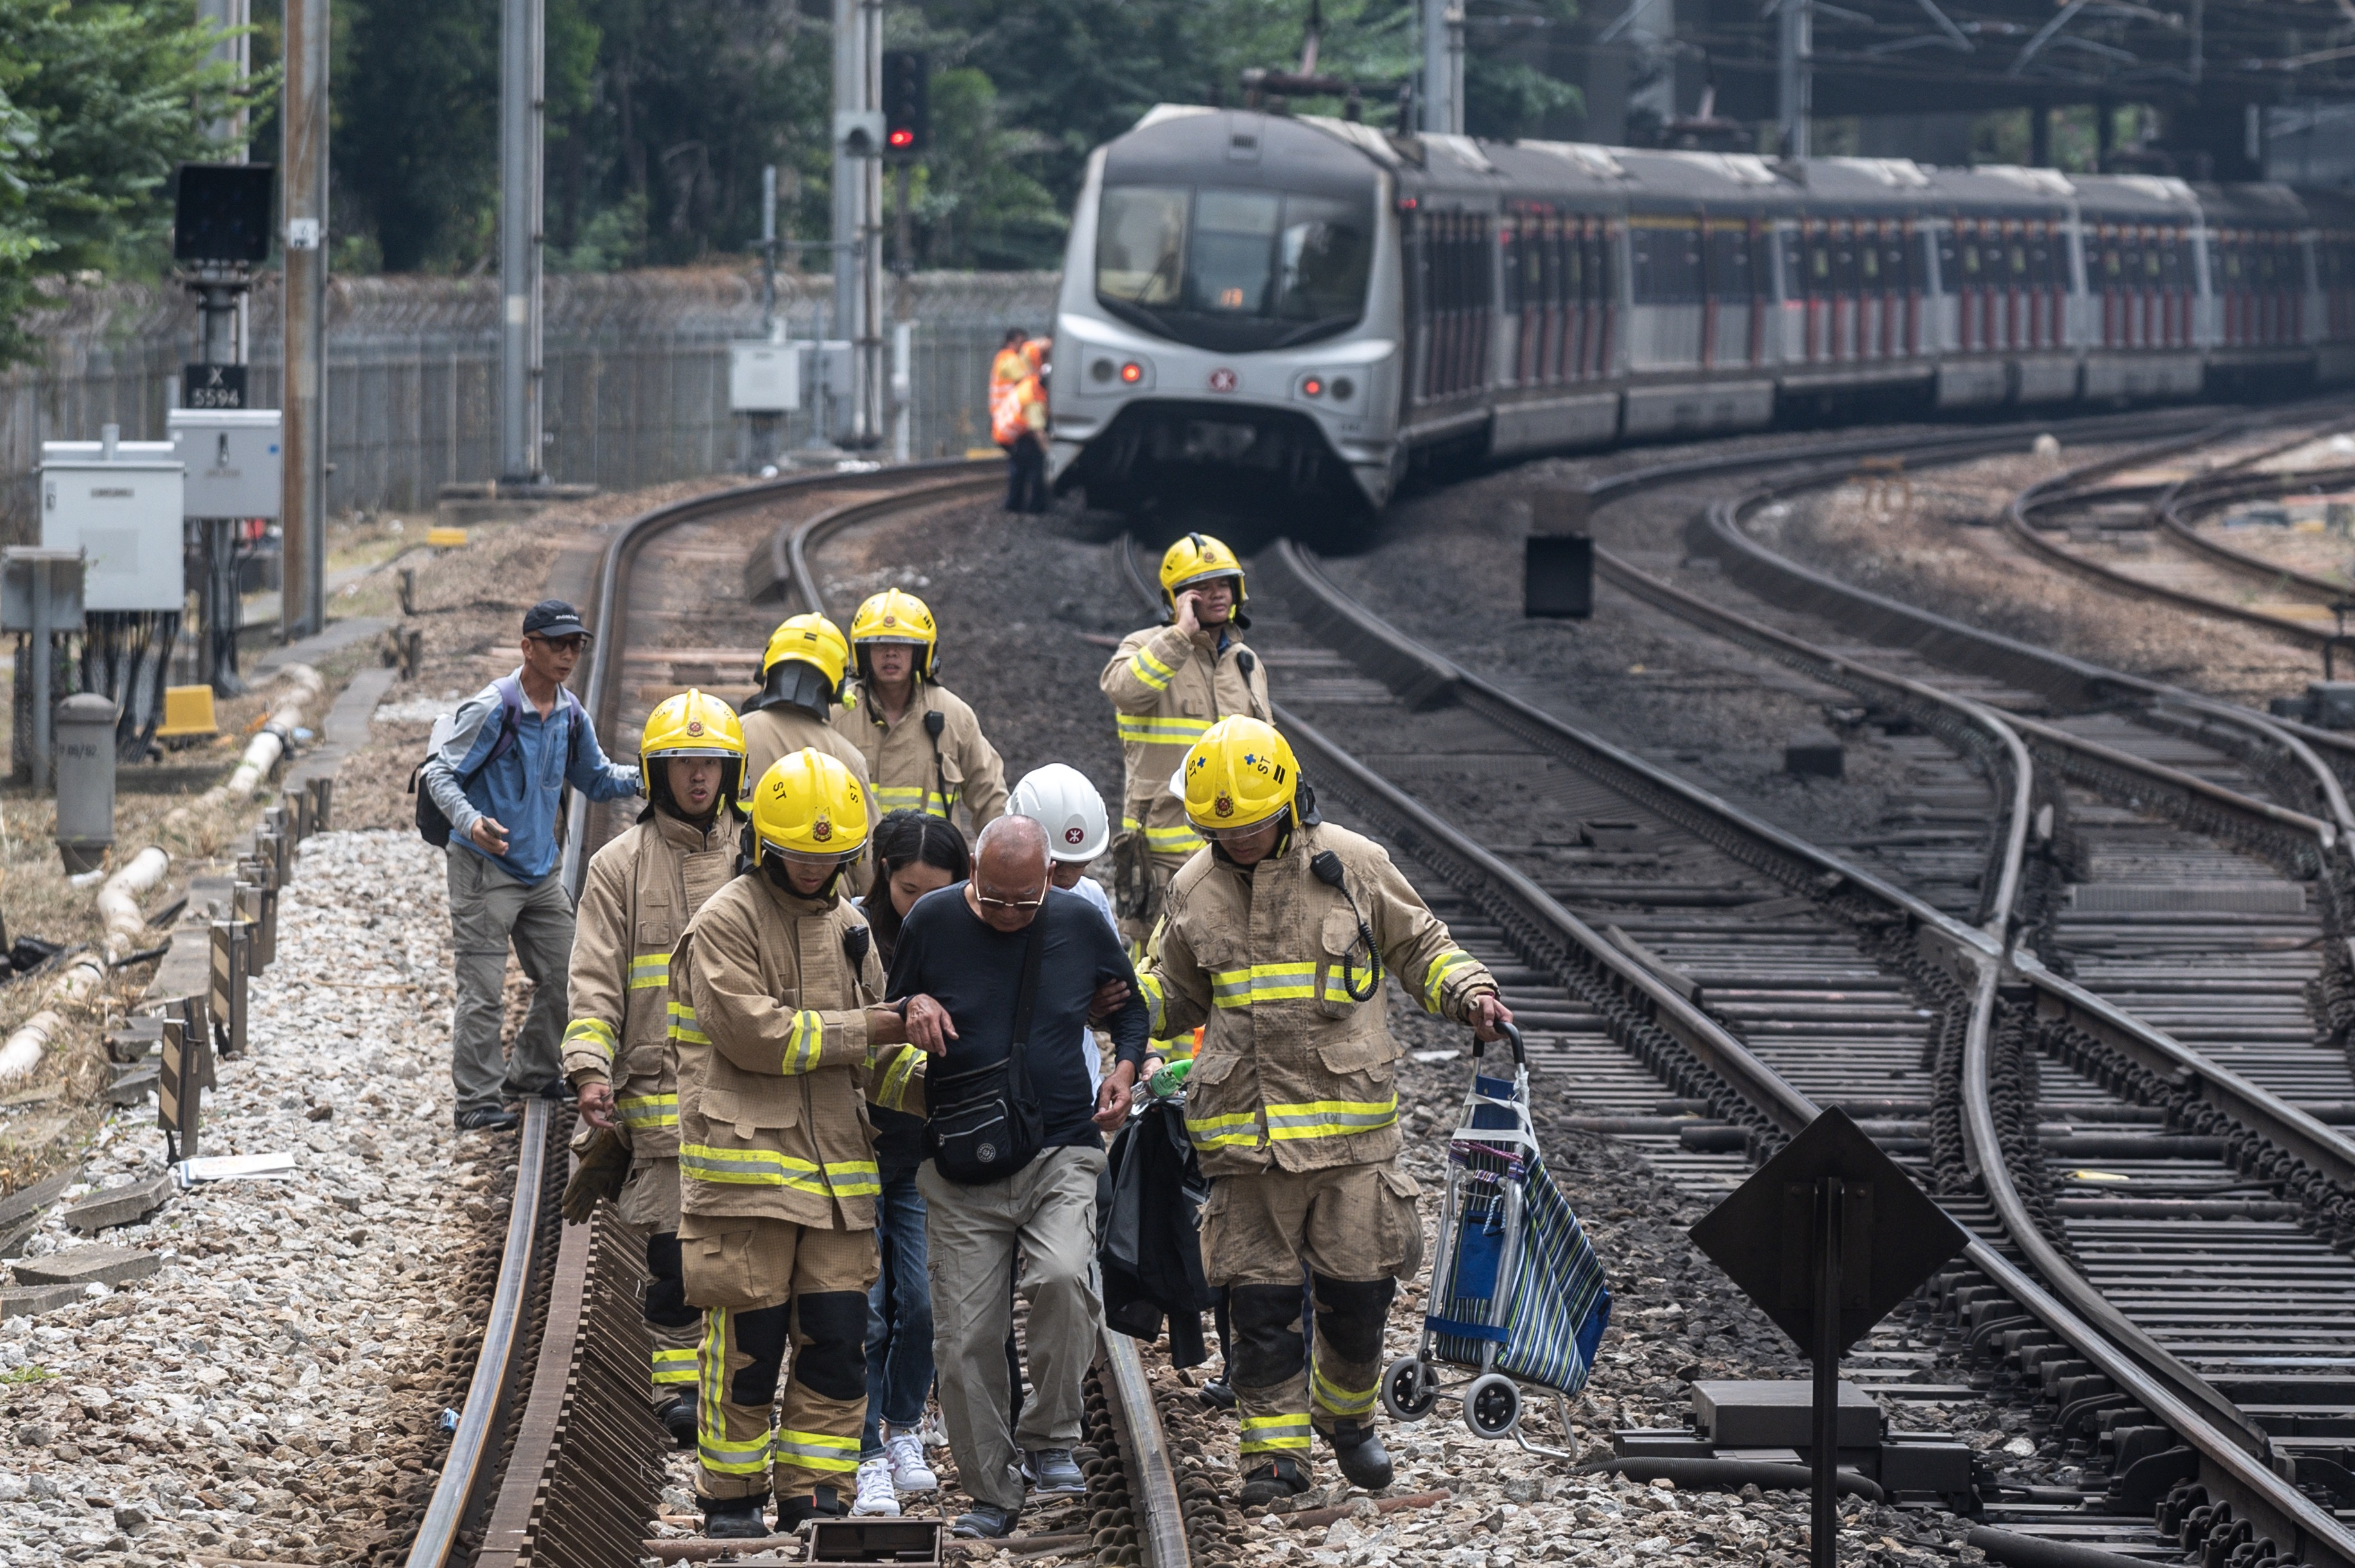 A man is escorted by firemen on the train tracks at Sha Tin MTR station due to the disruption of the train services in Hong Kong on November 12, 2019.